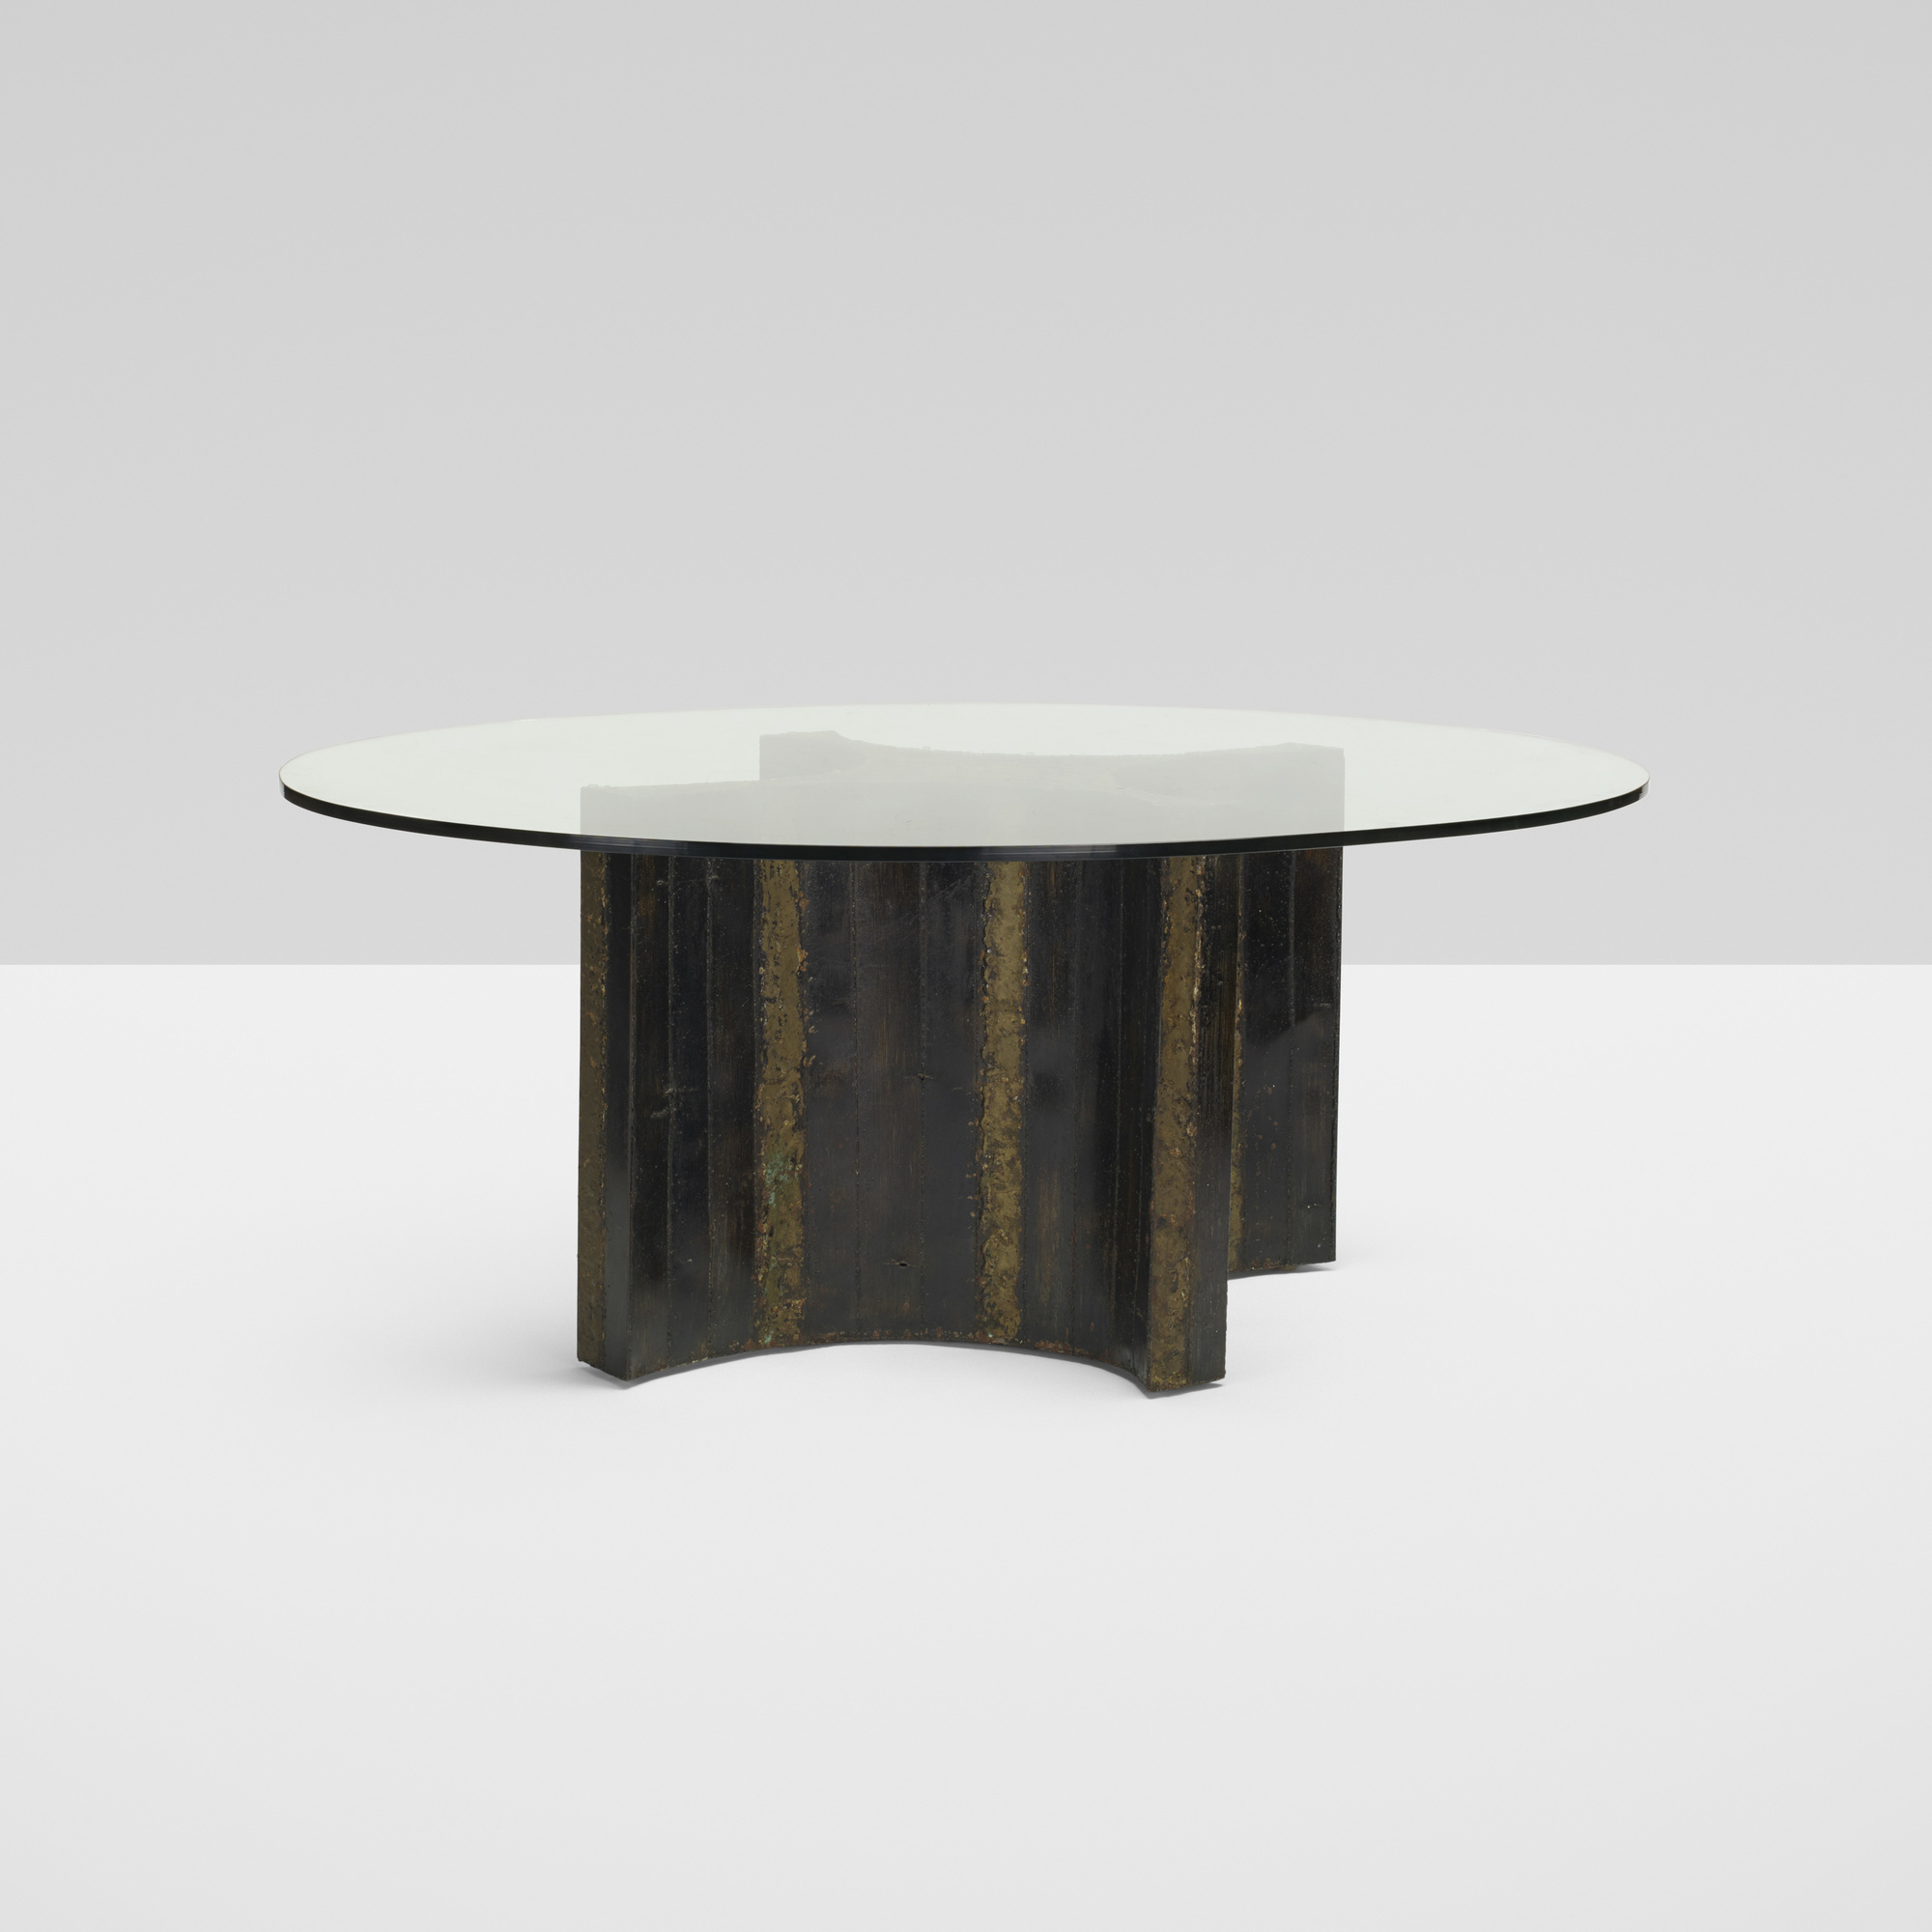 Merveilleux 257: Paul Evans / Dining Table (1 Of 2)